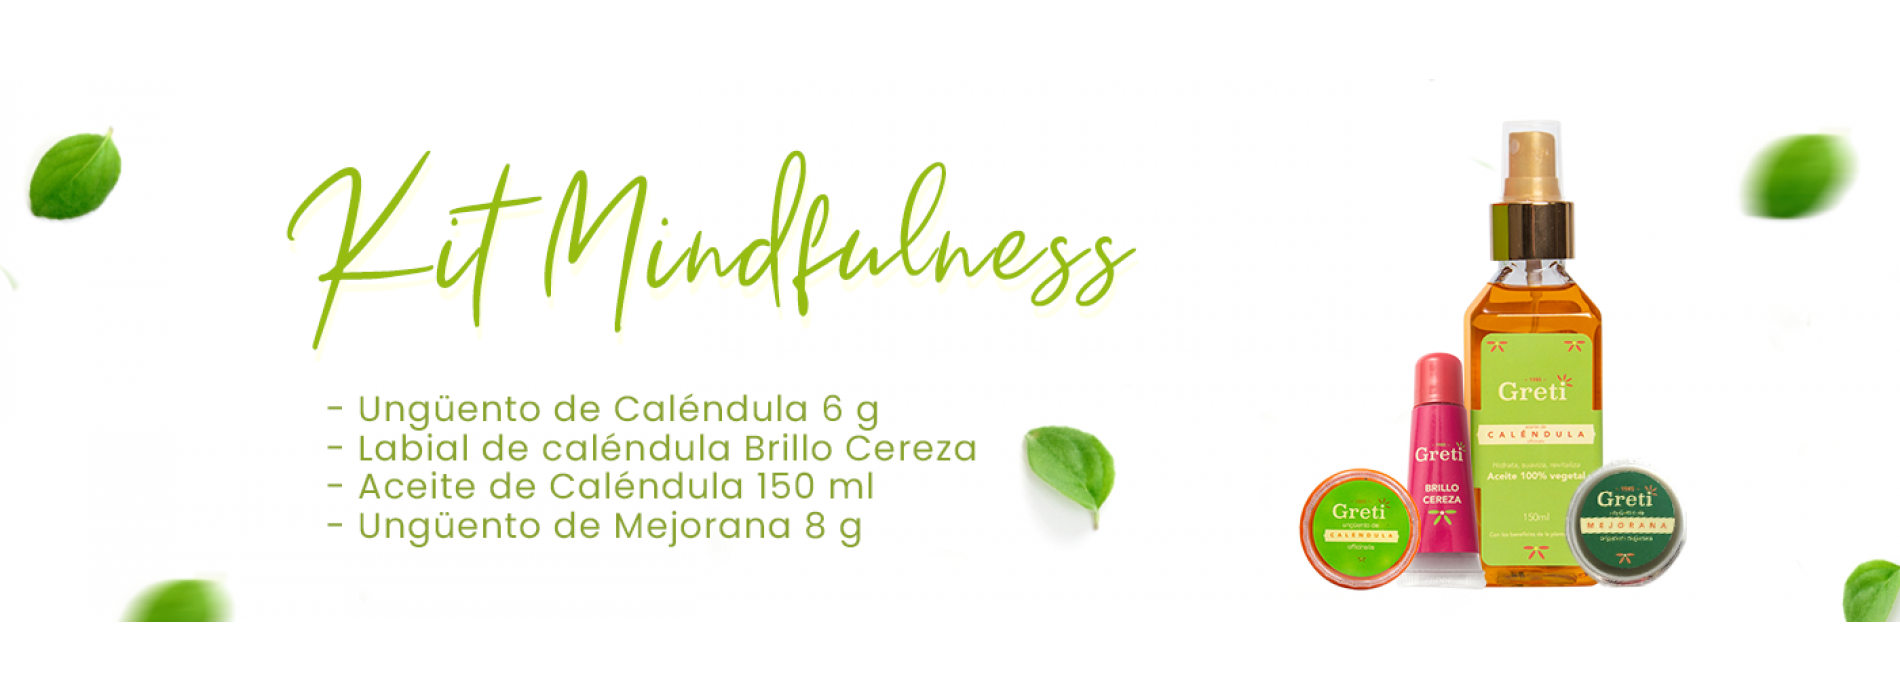 https://tienda.greti.com.co/item-kit_mindfulness-331103